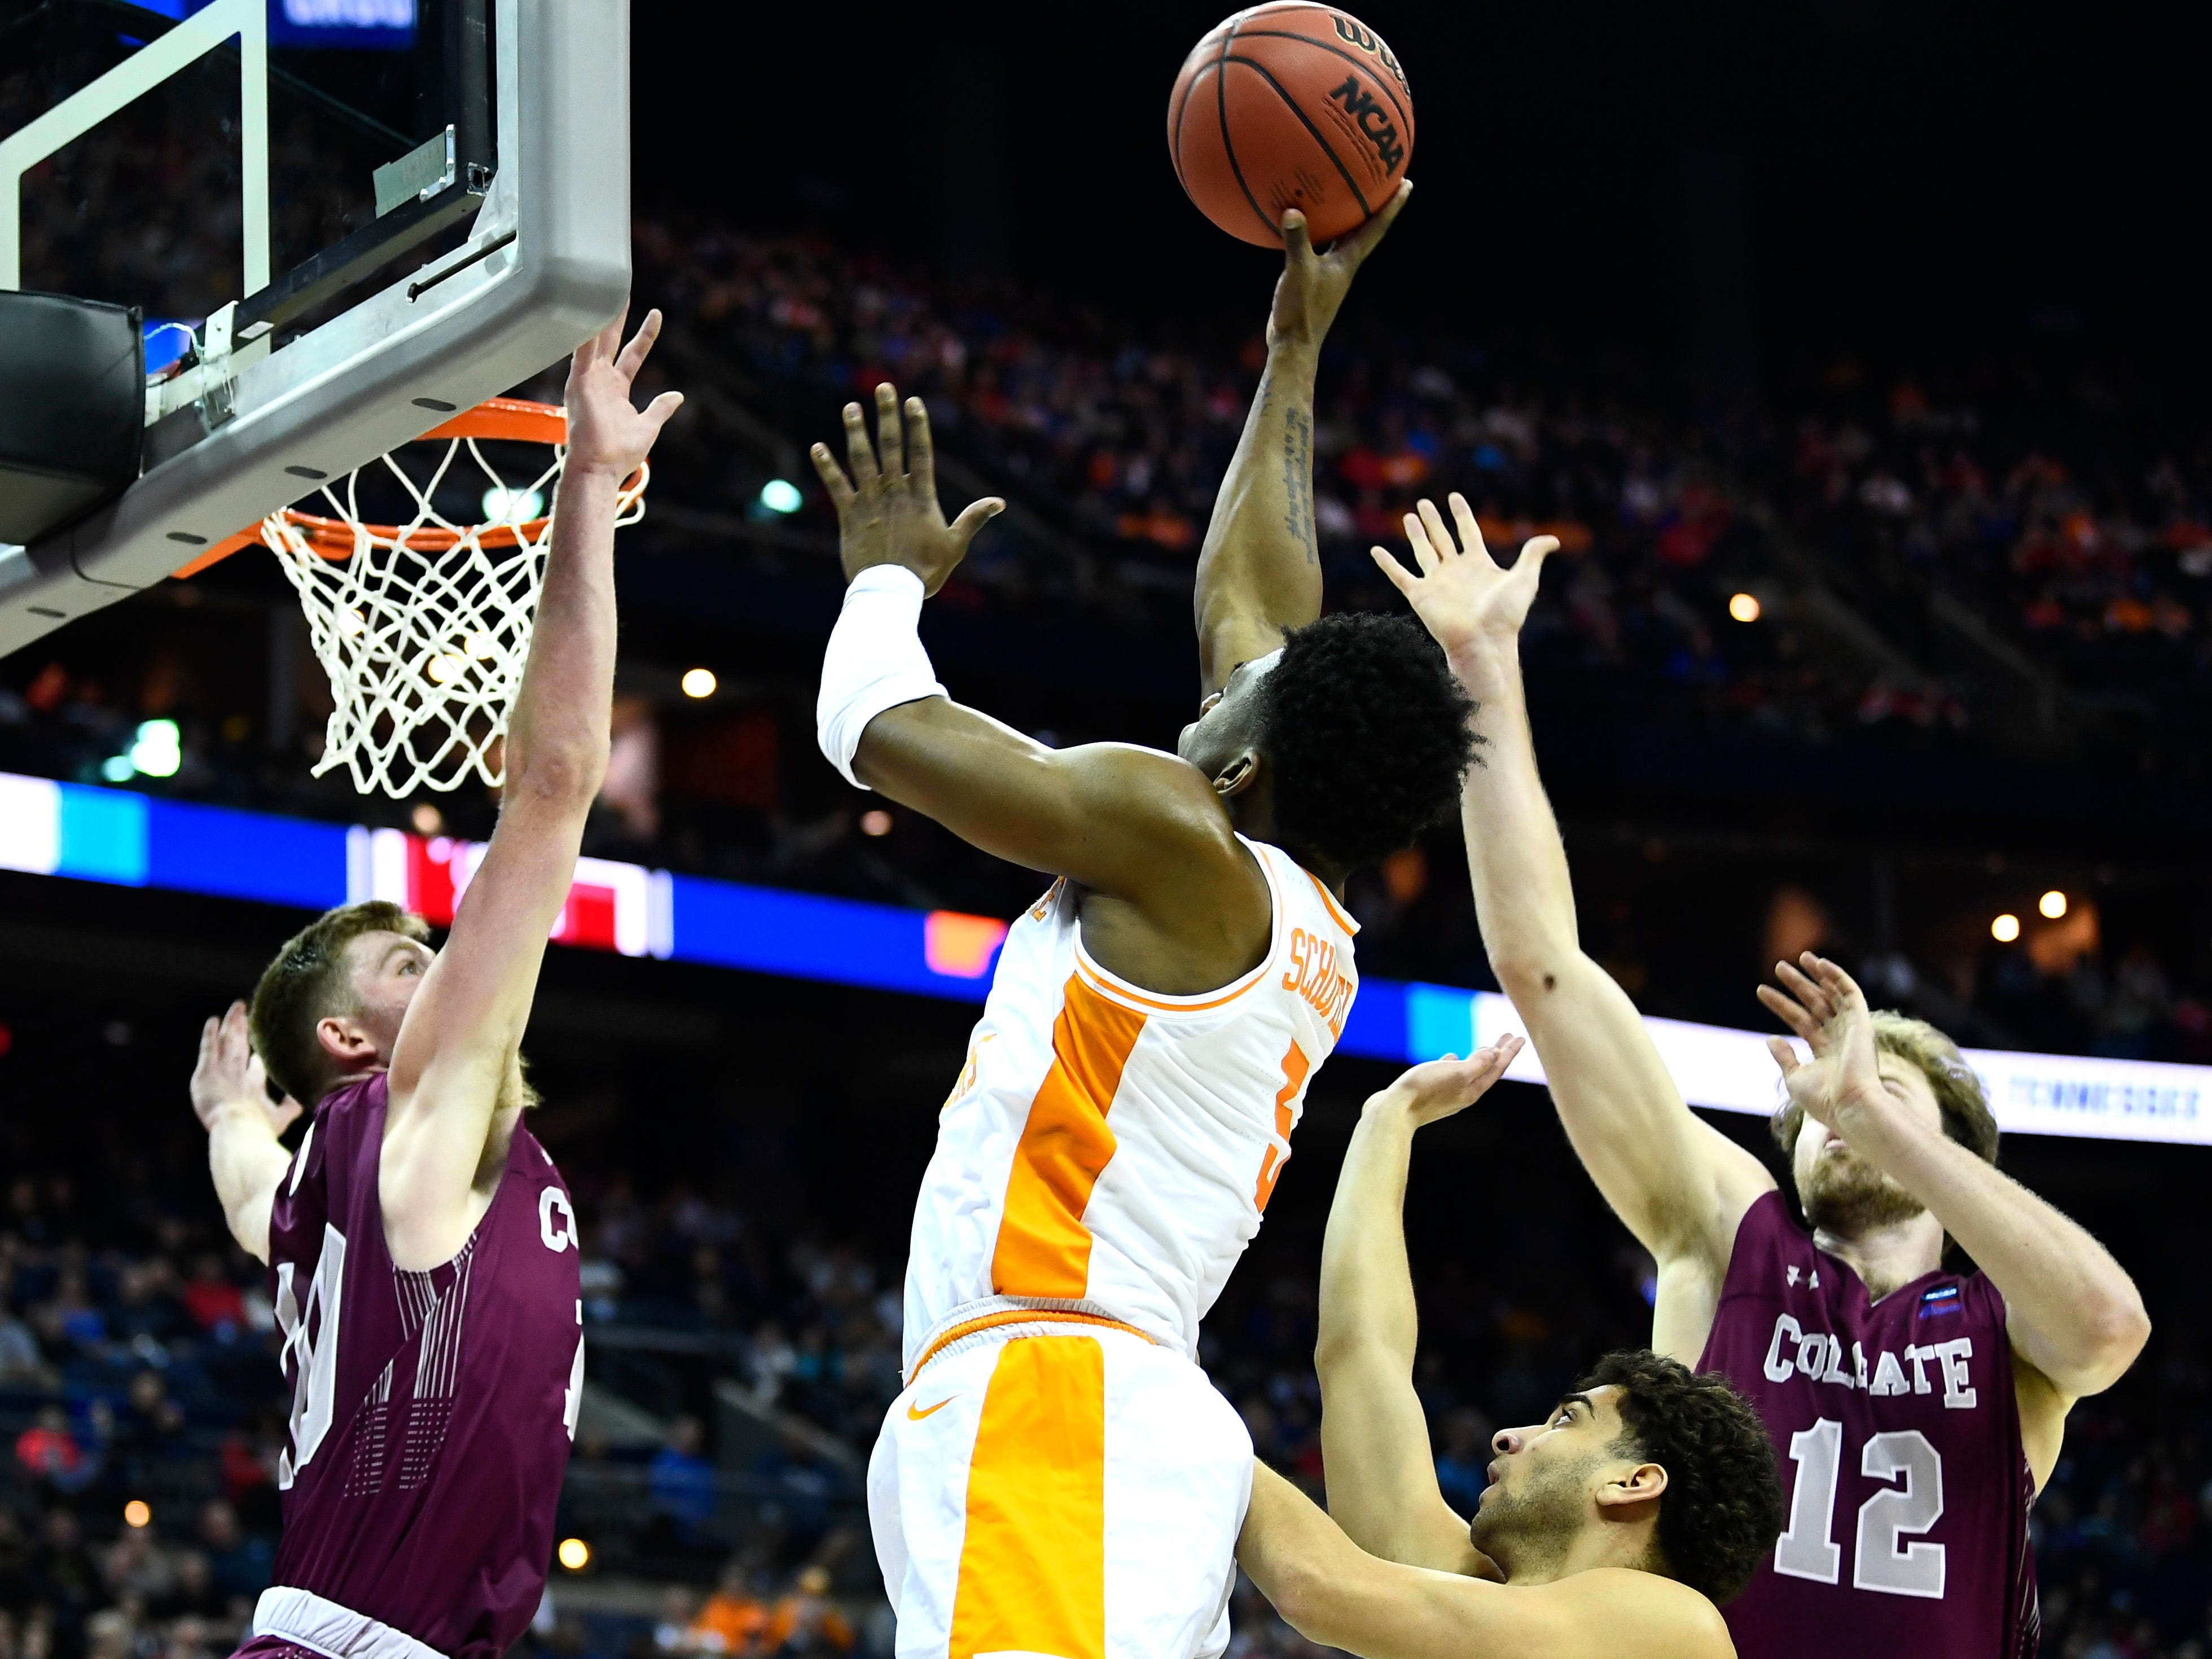 Tennessee guard Admiral Schofield (5) shoots over Colgate forward Will Rayman (10) in the first round game of the NCAA Tournament at Nationwide Arena in Columbus, Ohio, on Friday, March 22, 2019.